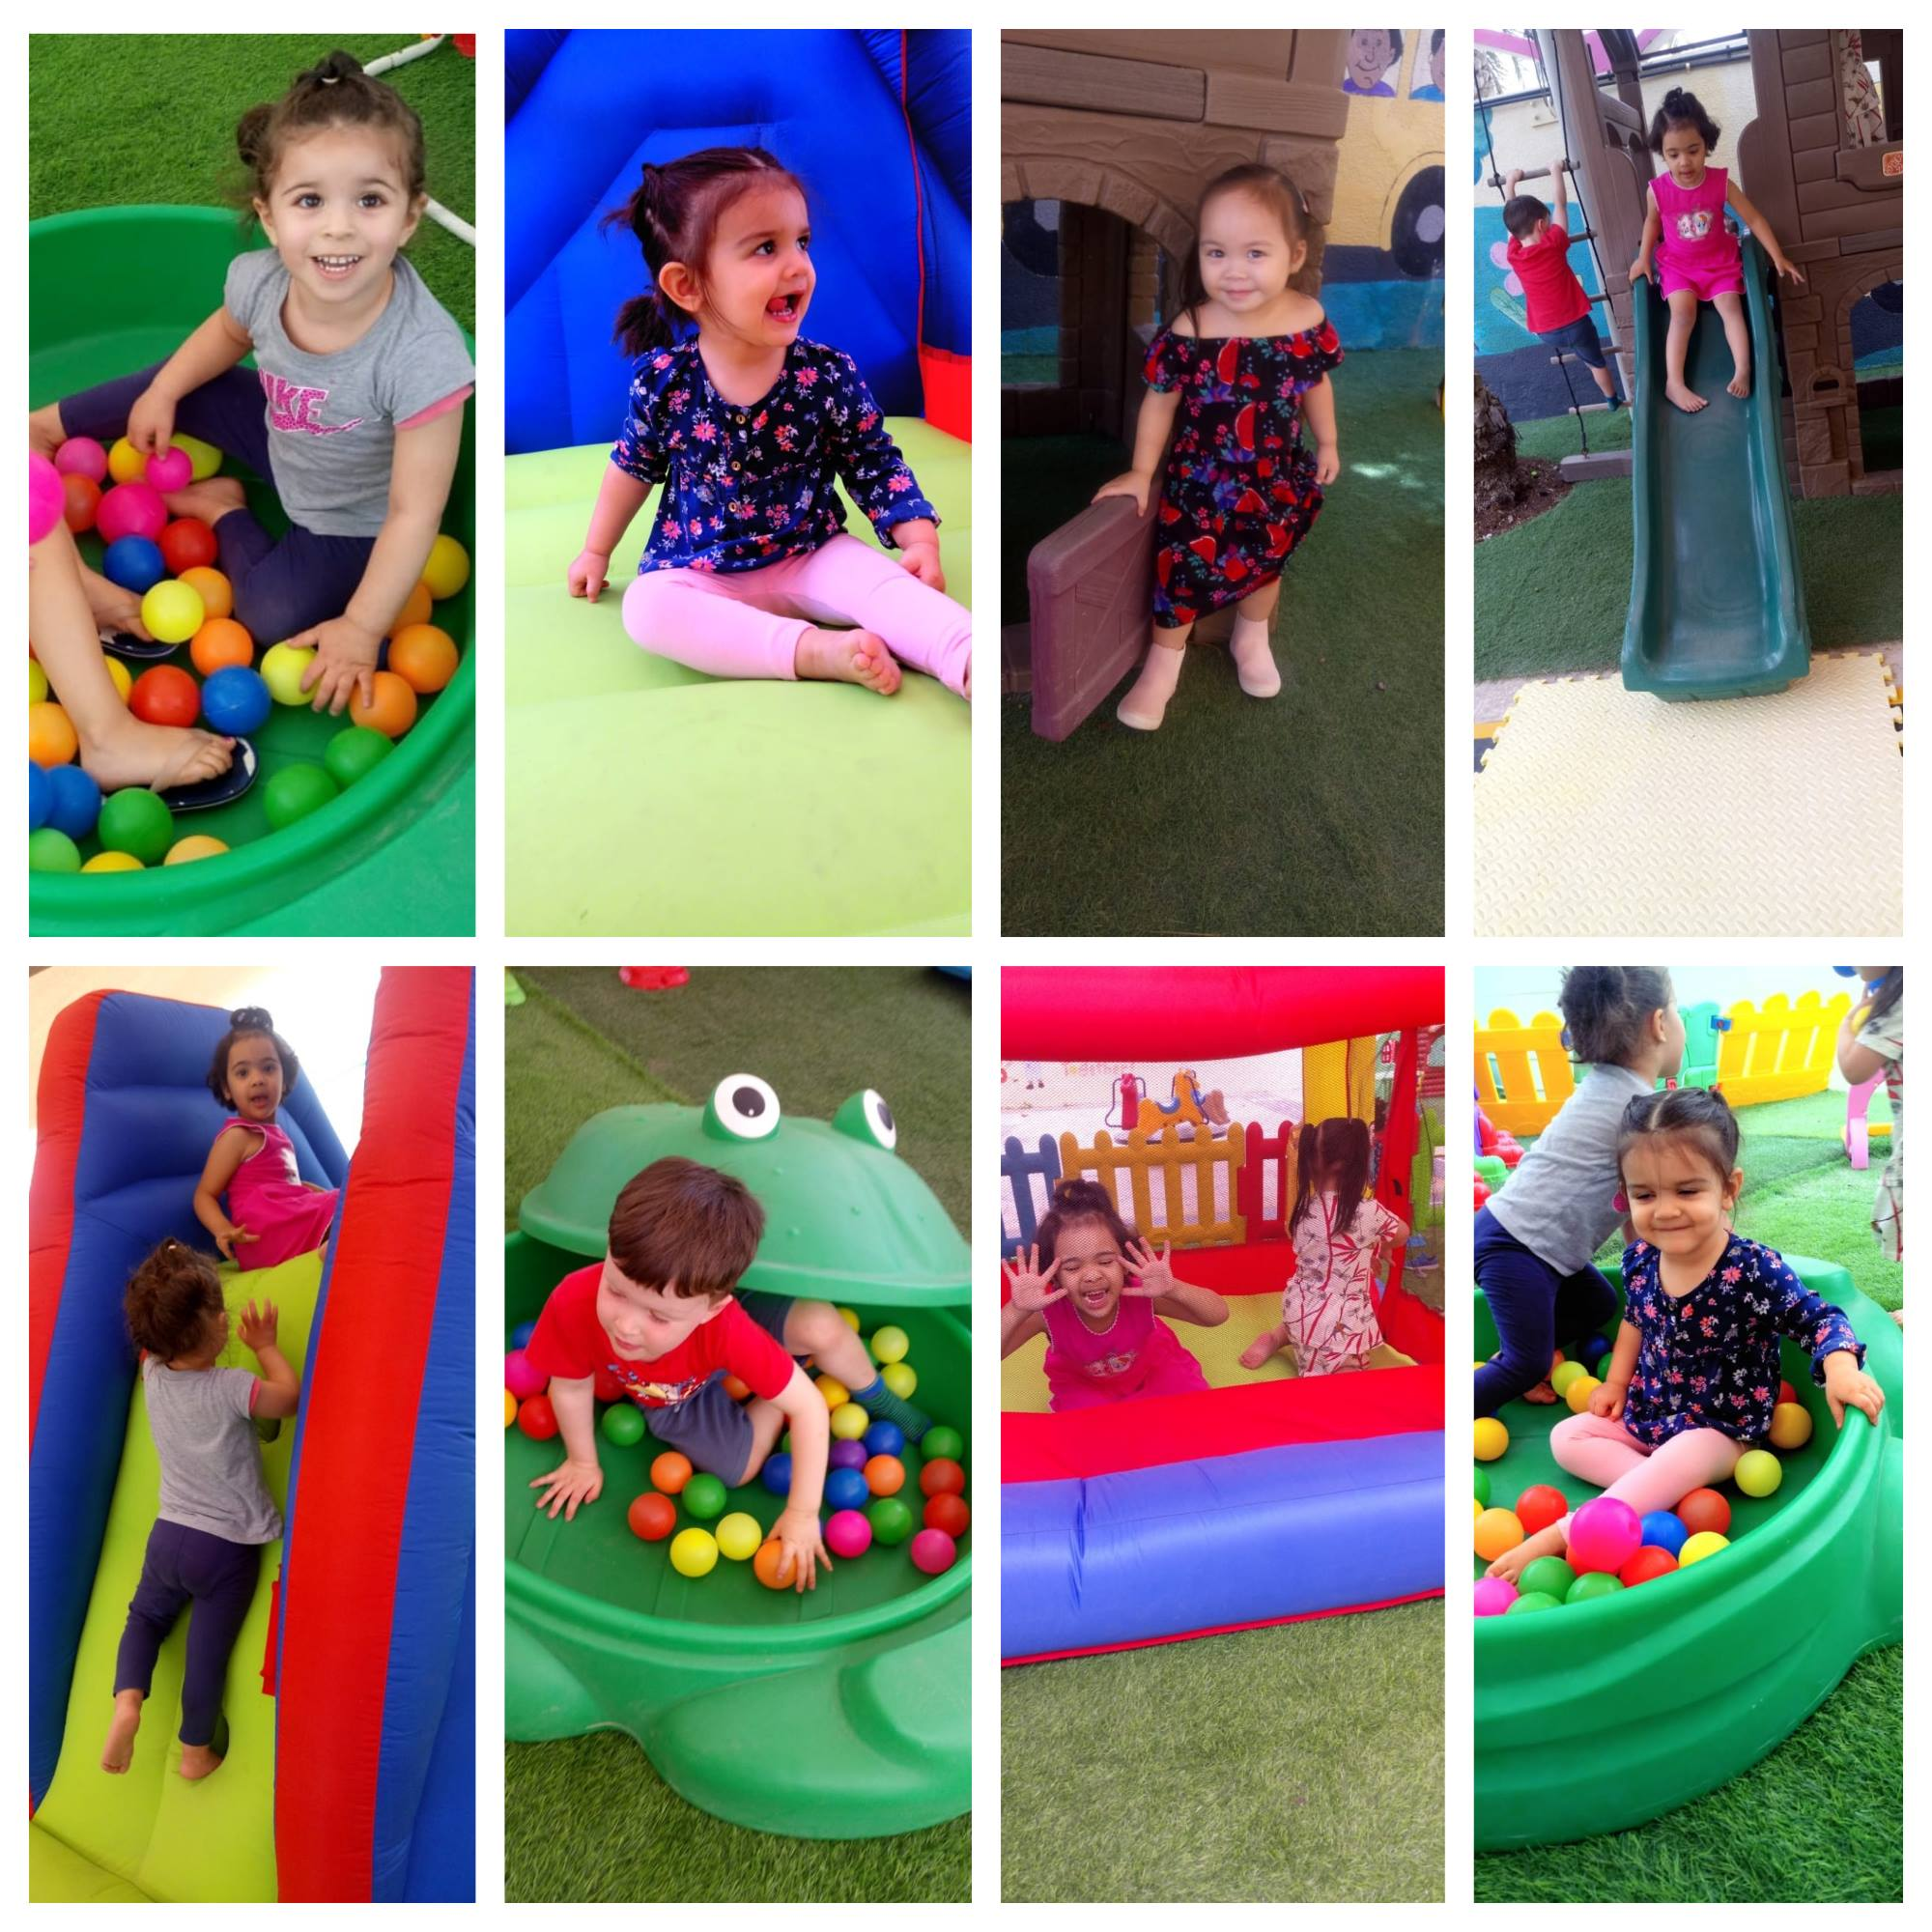 Afternoon Fun at our Khuzam branch!